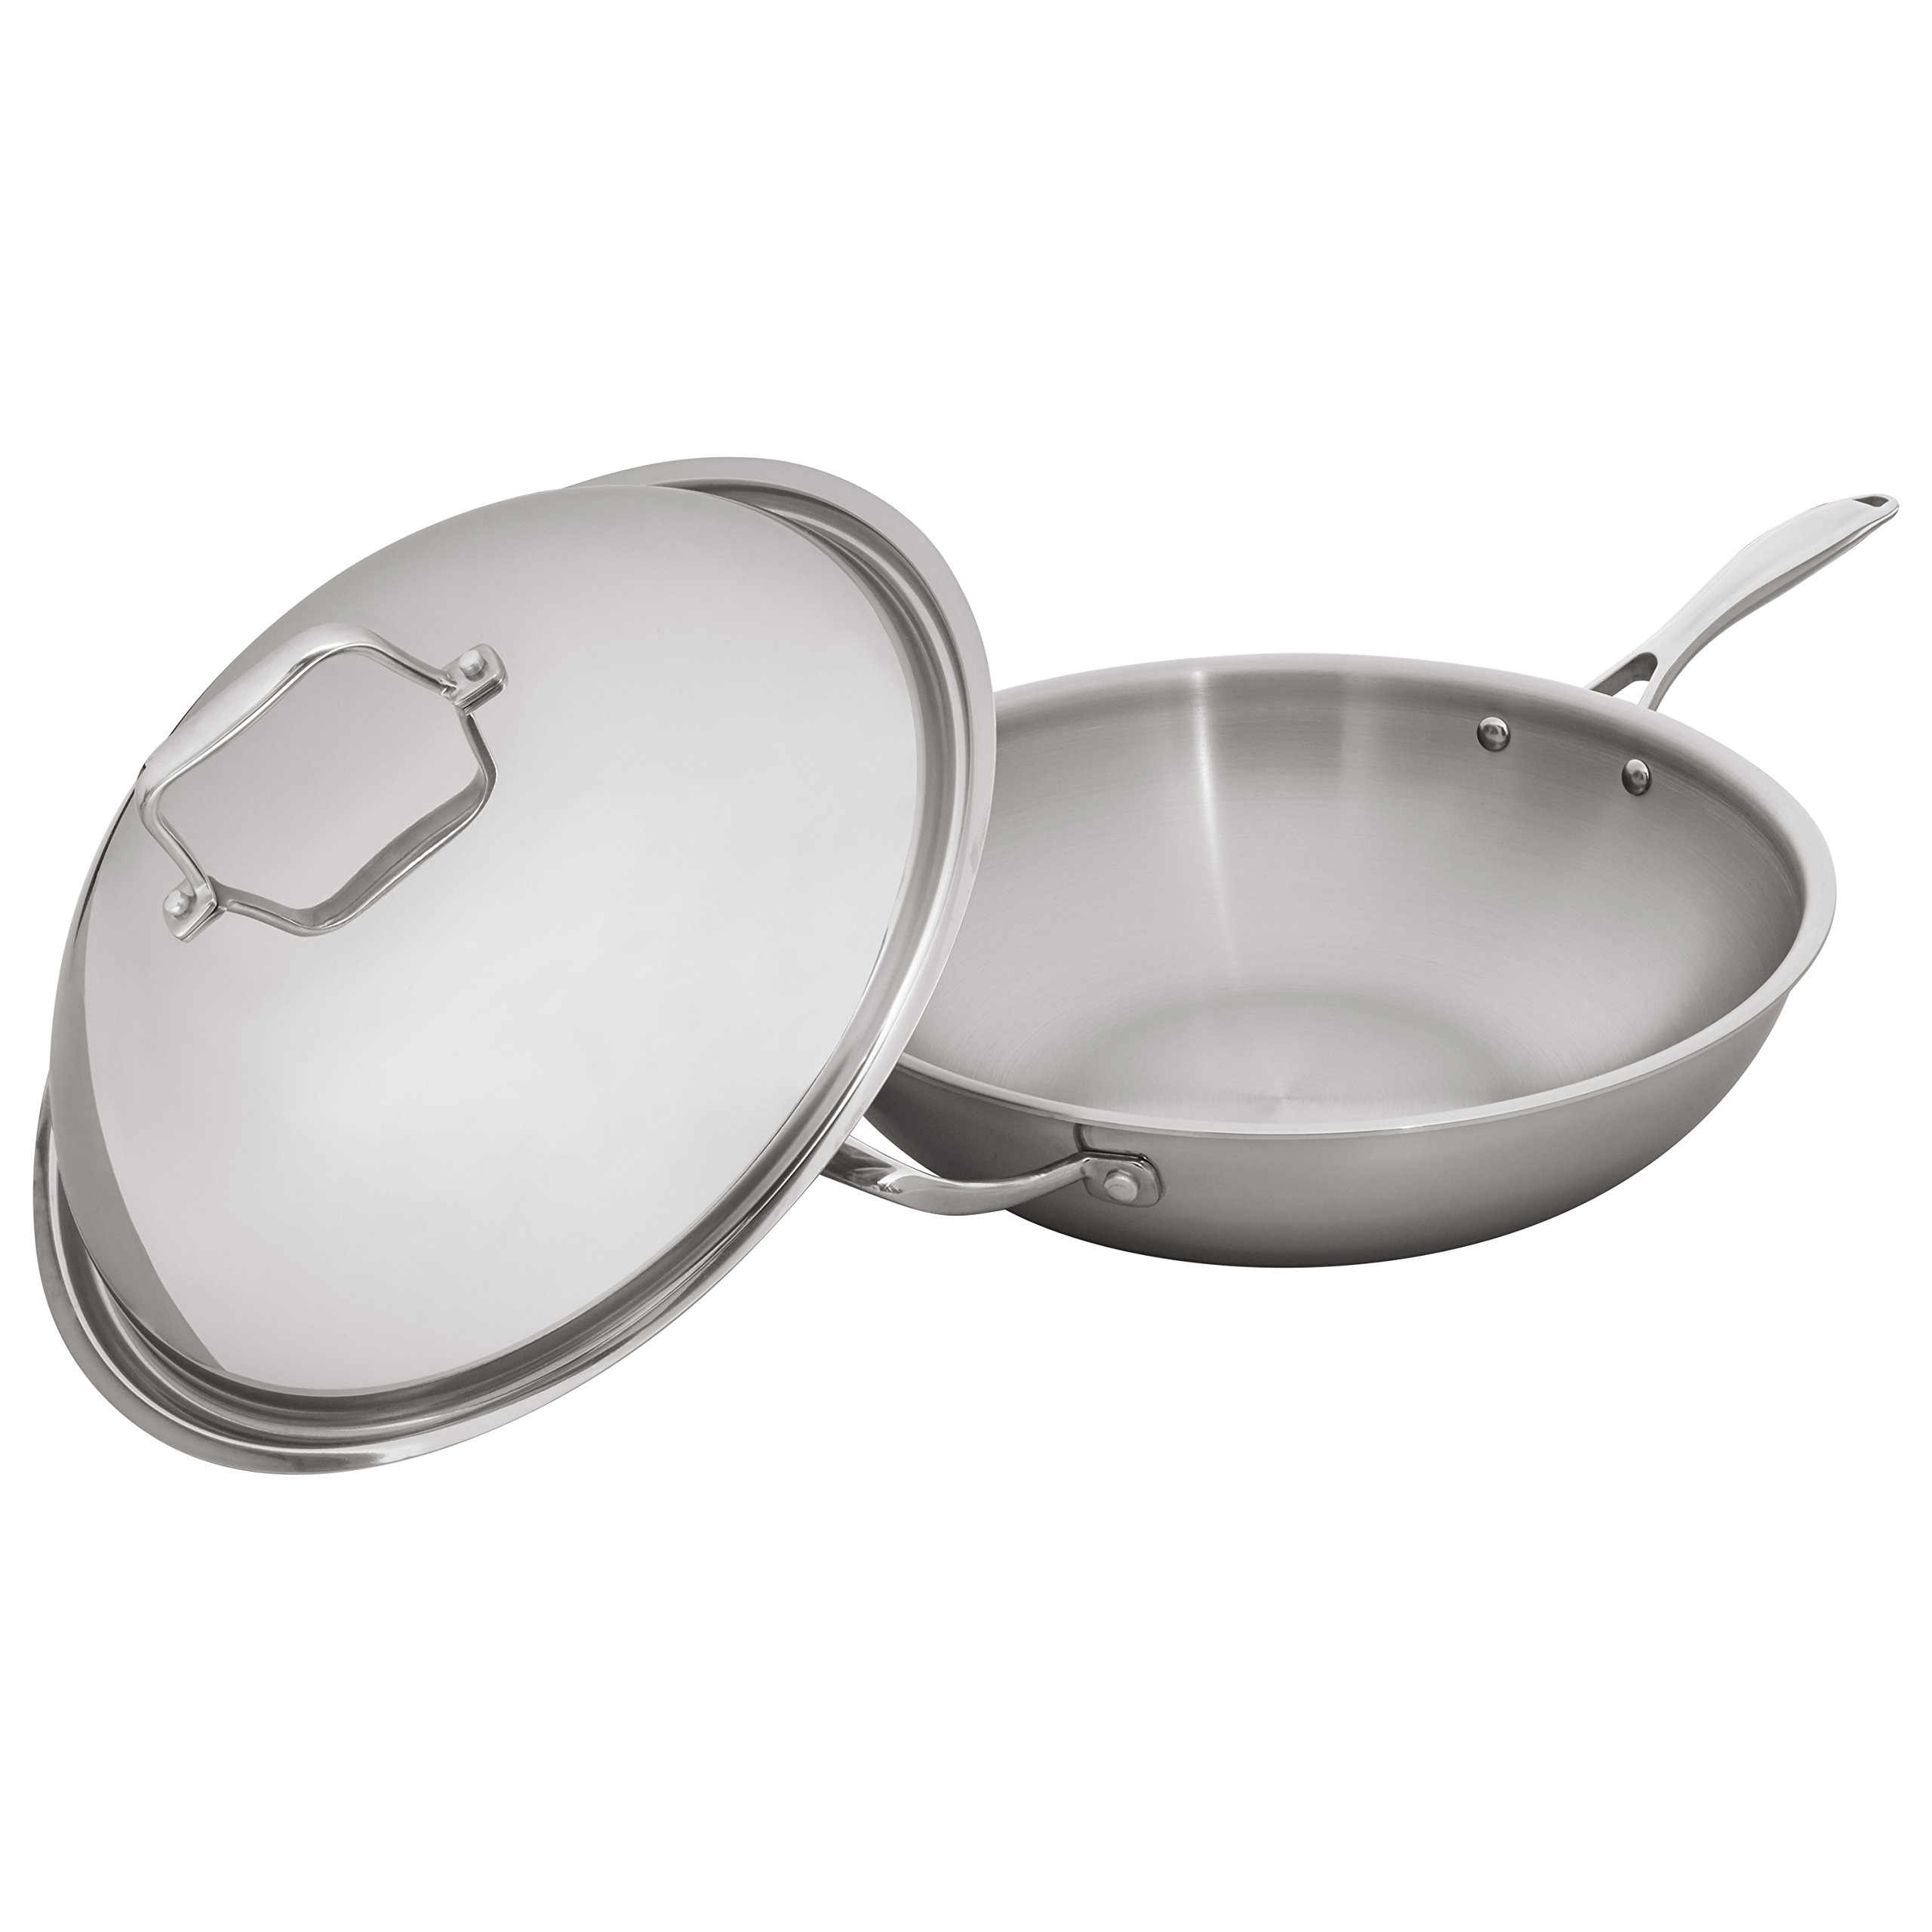 Stone & Beam Wok With Dome Lid, 13 Inch, Tri-Ply Stainless Steel